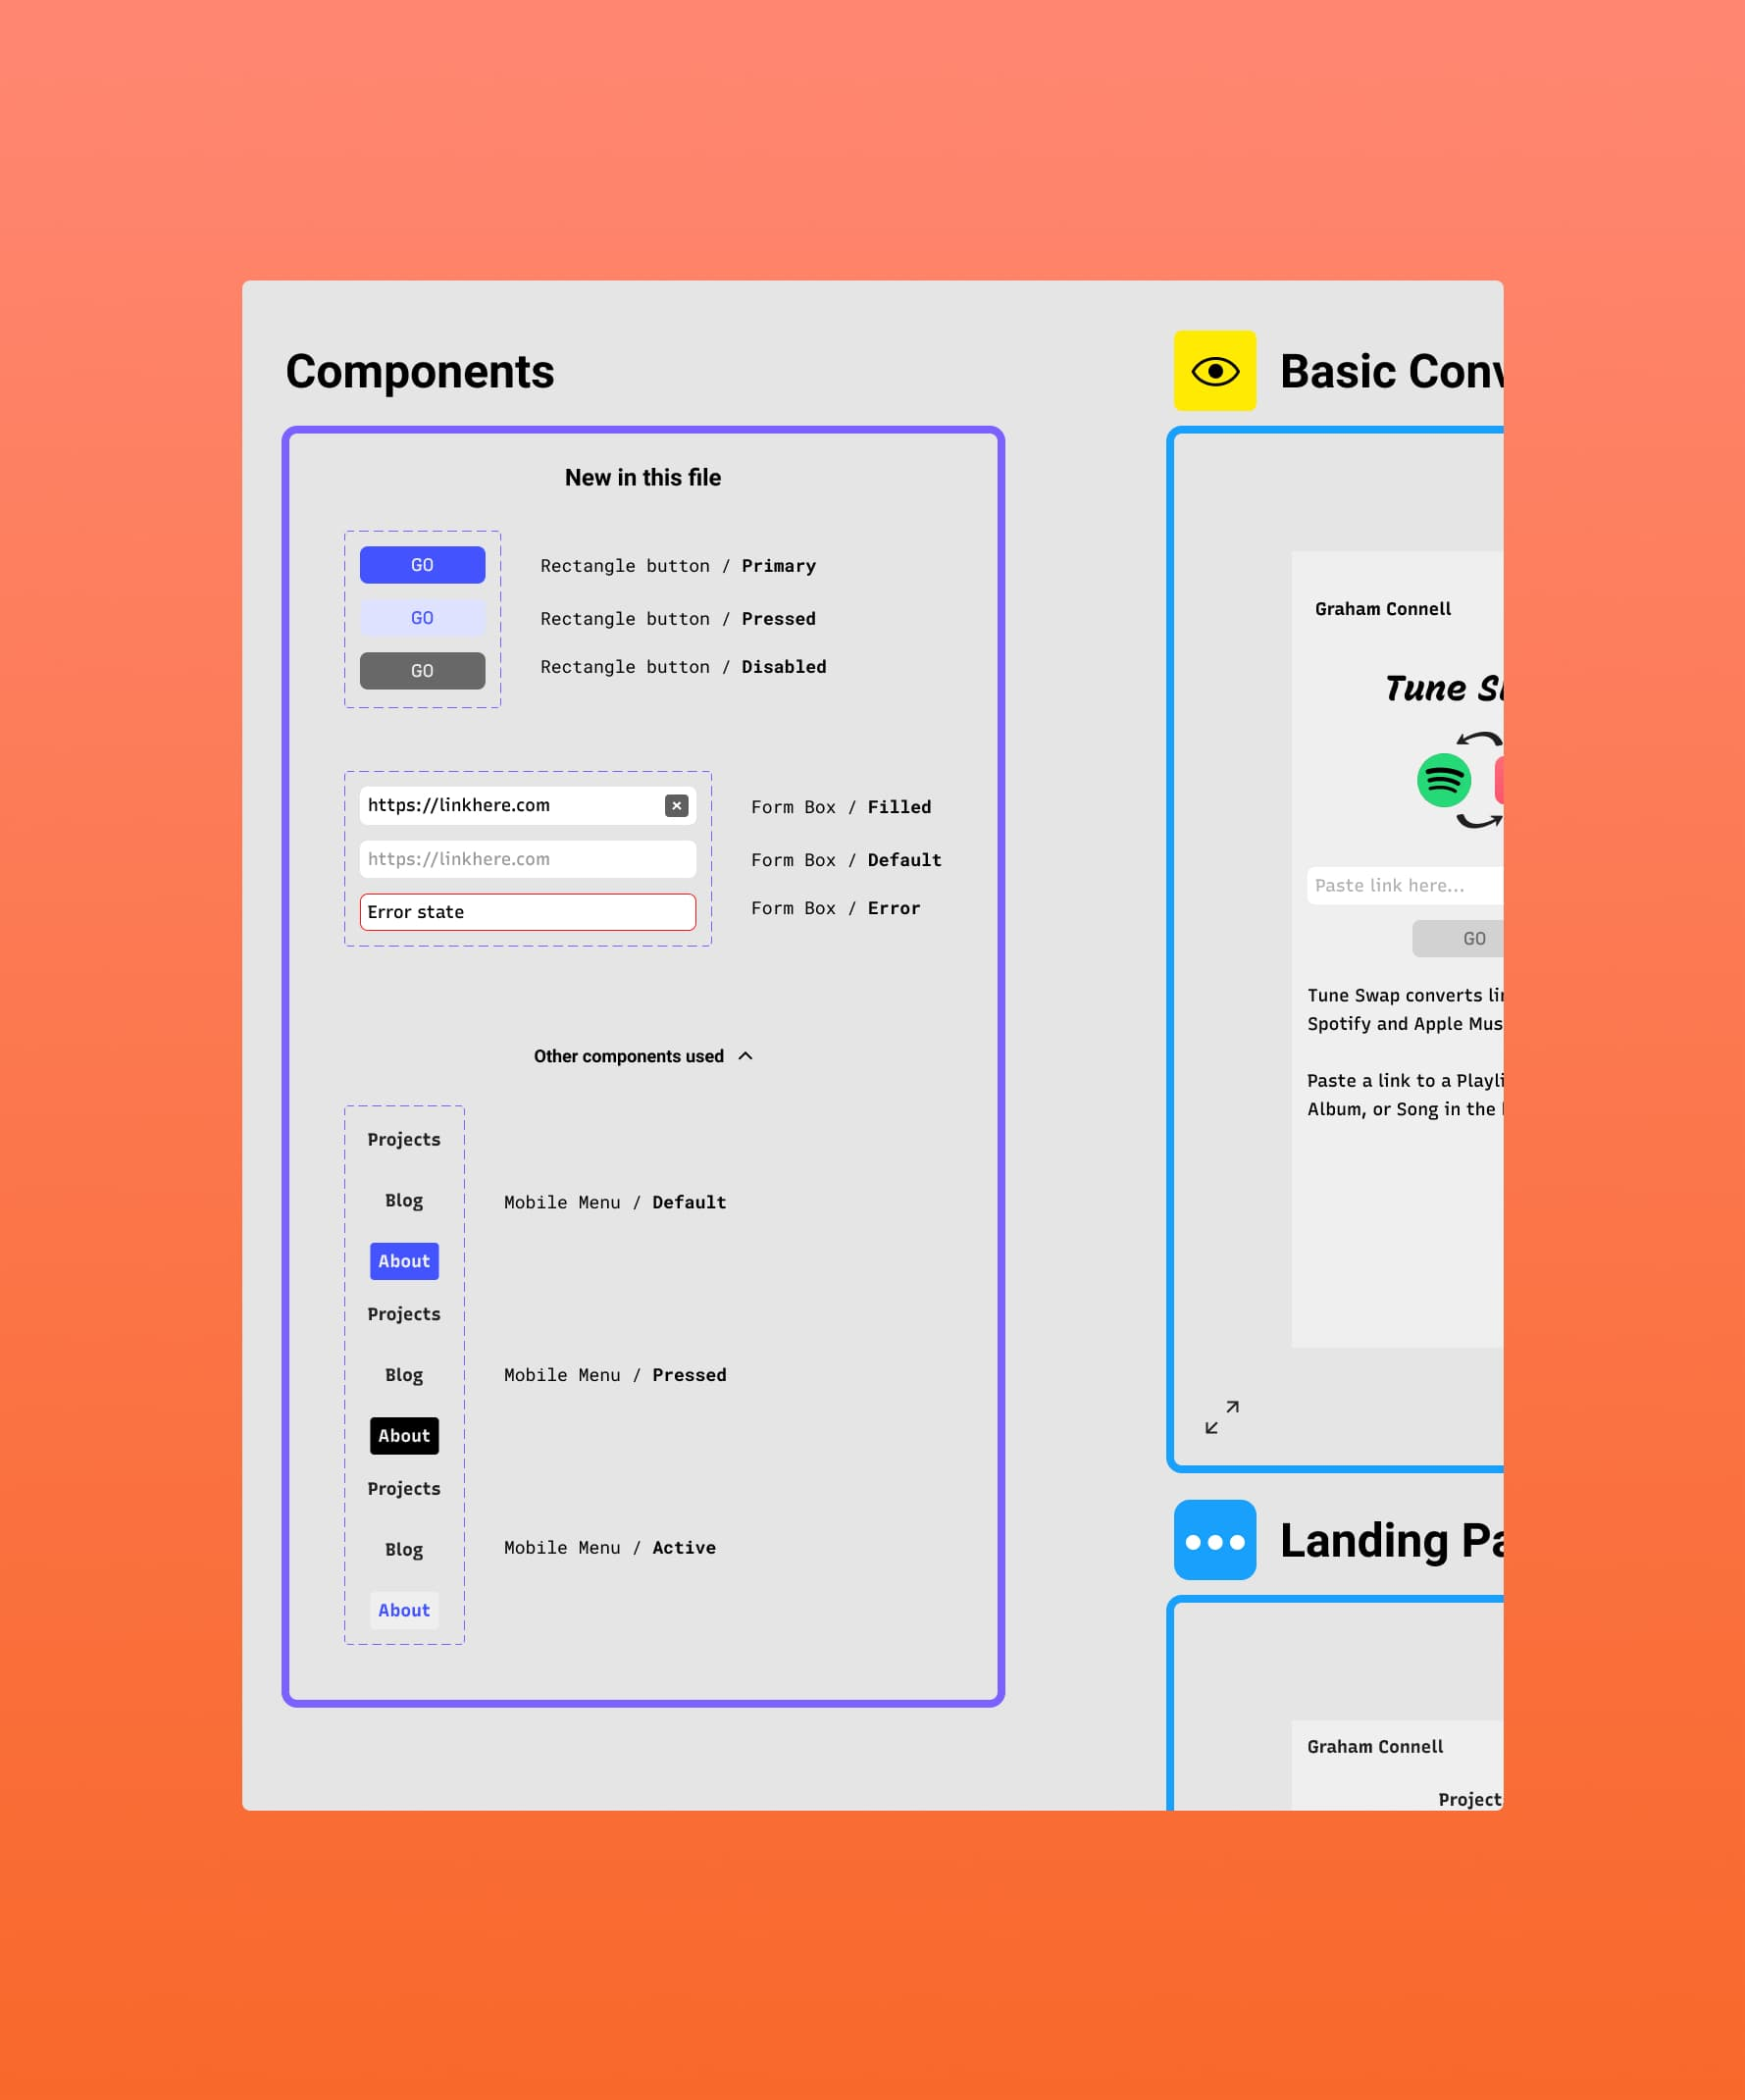 zoomed in user interface of a components section within Figma